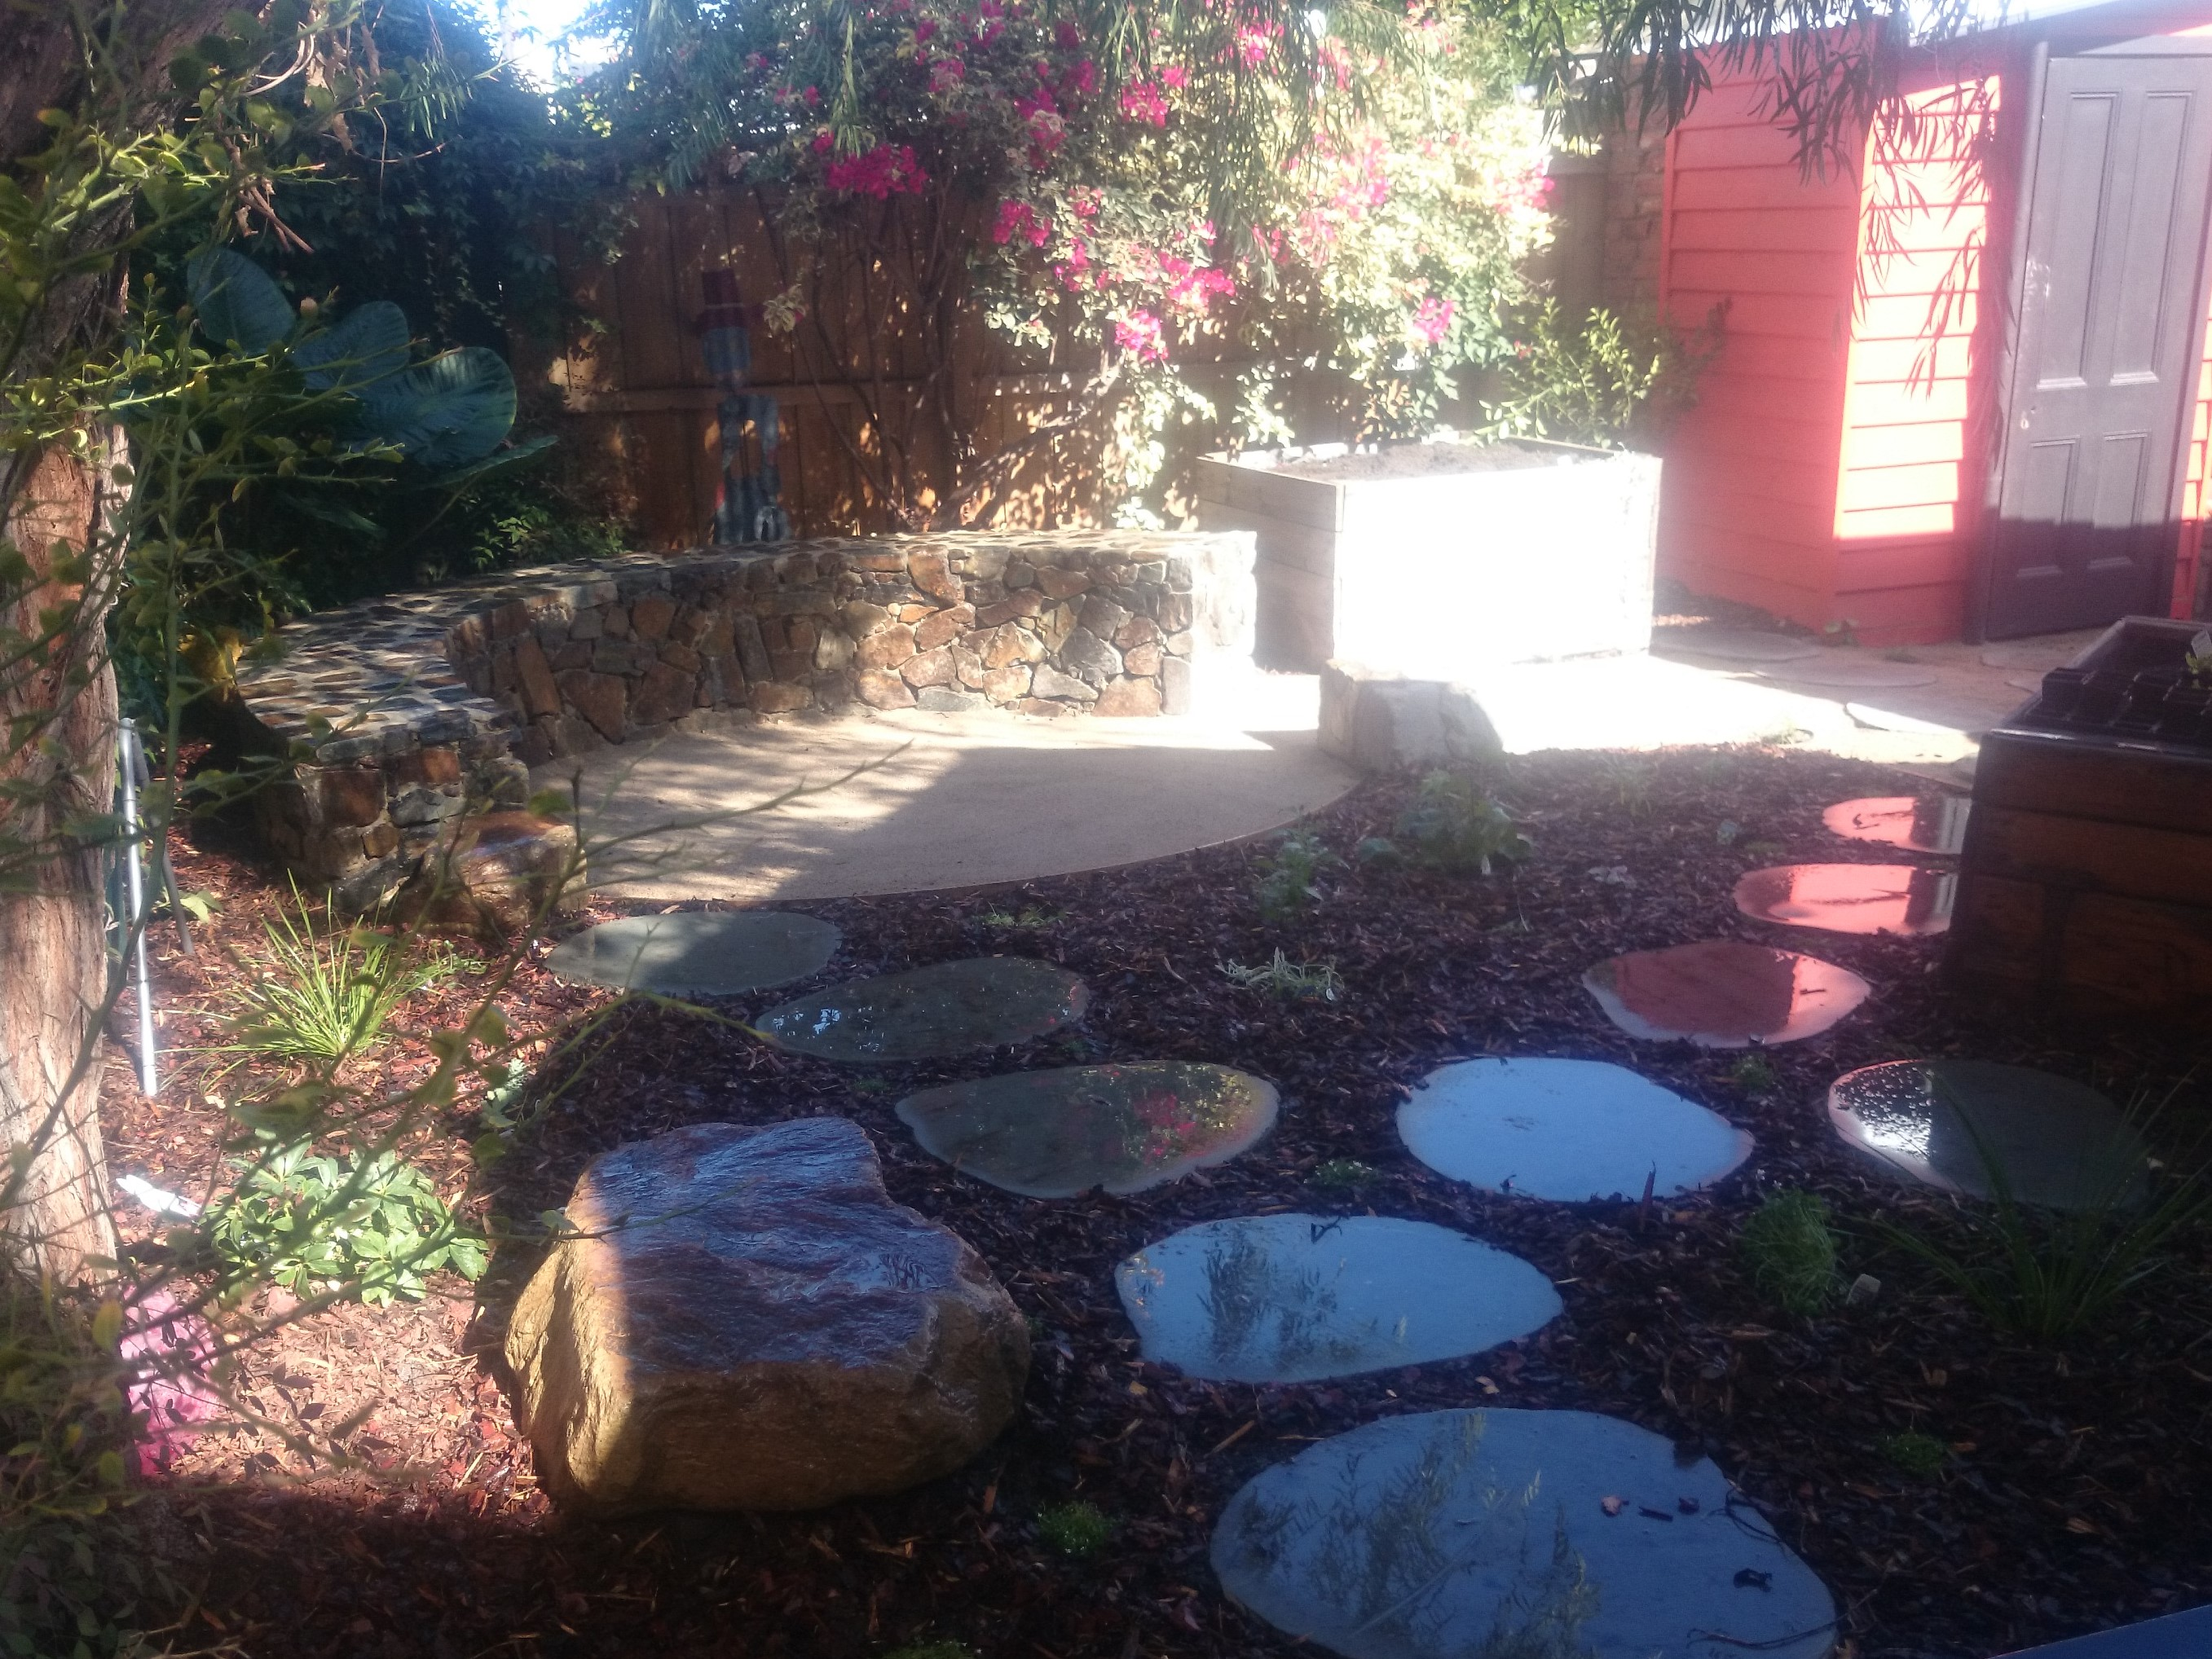 Circular seat, Fire pit, Coldstream stone, seat, Circular stone seat, inner city fire pit